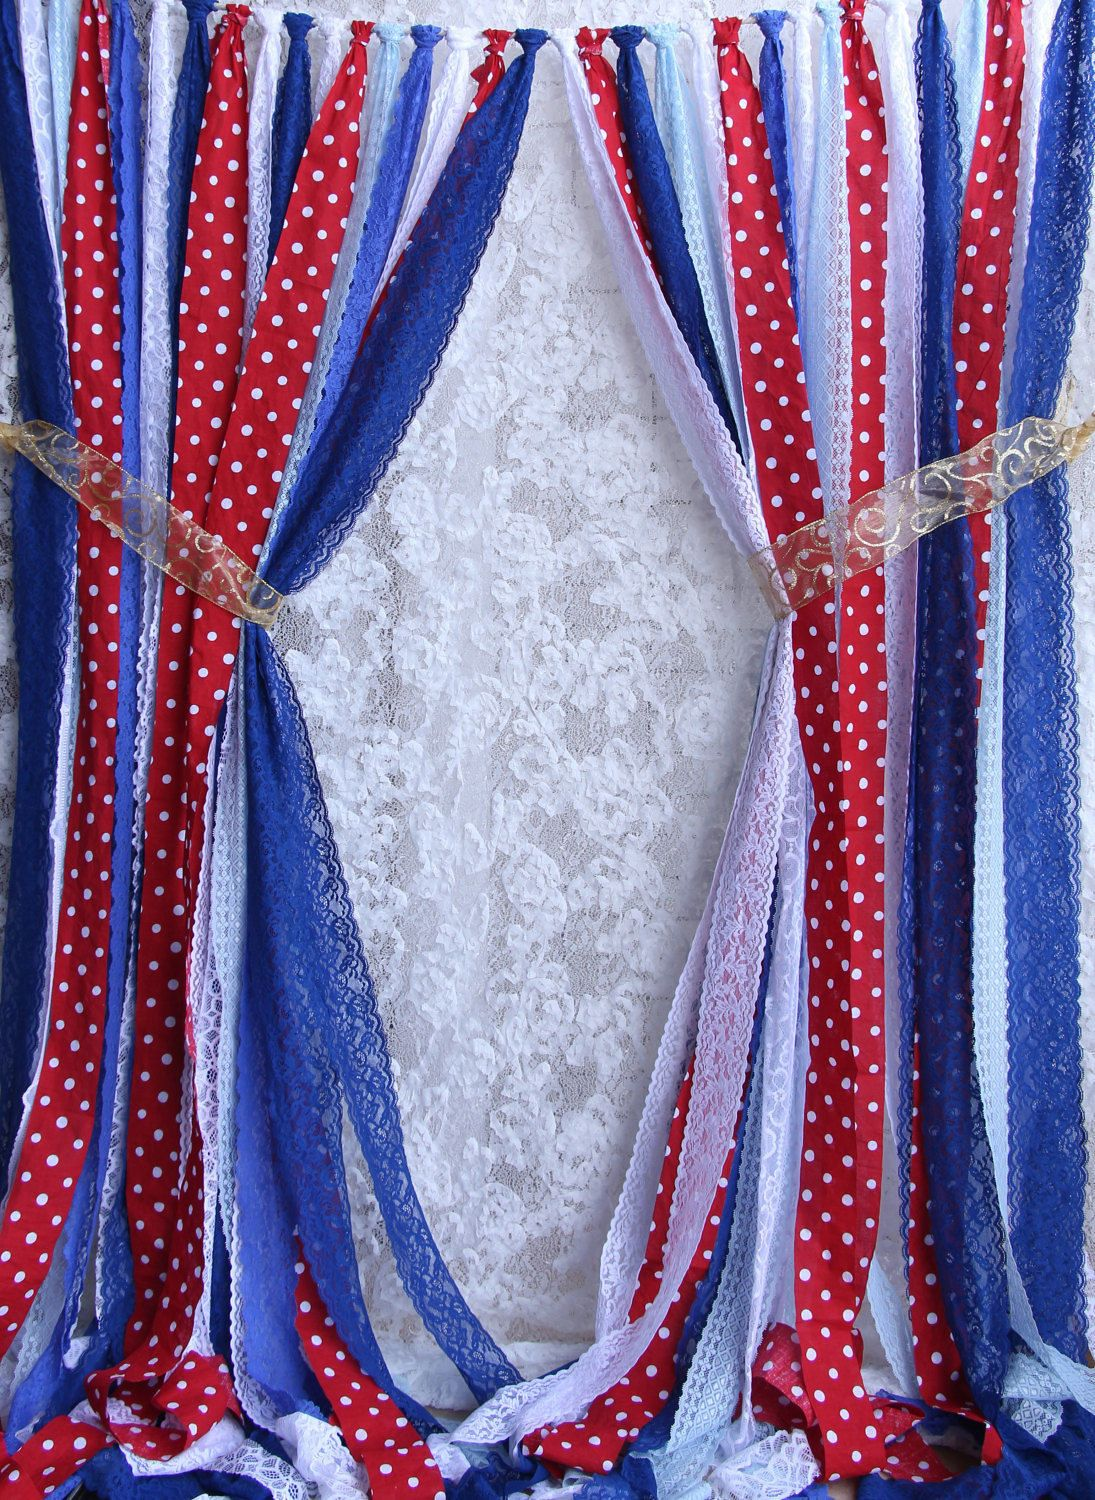 Blue curtain backdrop - Navy Blue Lace Red Fabric Backdrop Props Photography Baby Shower Backdrop Wedding Ceremony Stage